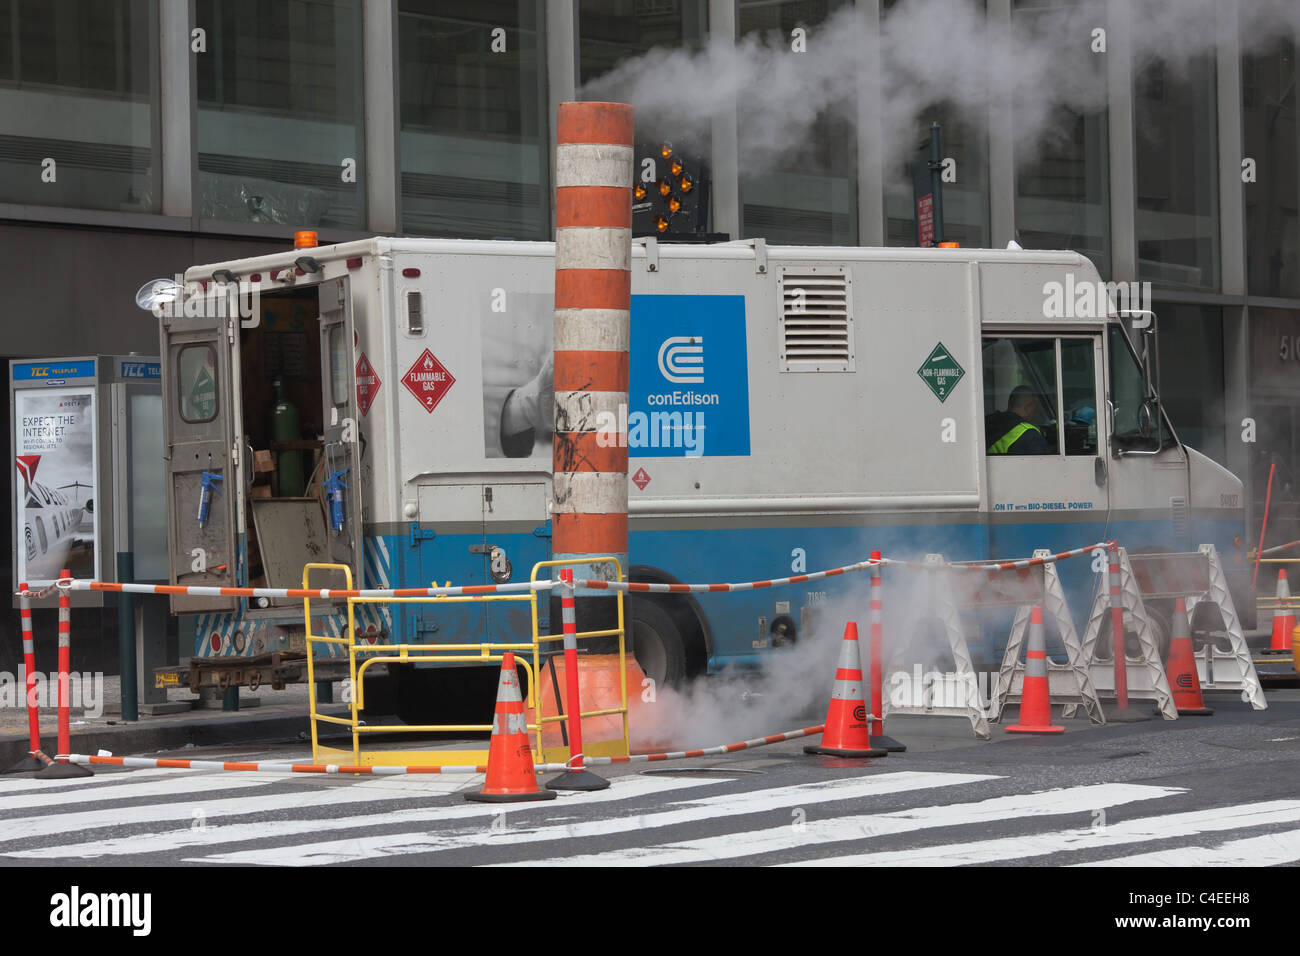 A Con Edison service truck and maintenance crew work at a site on a street in New York City. - Stock Image